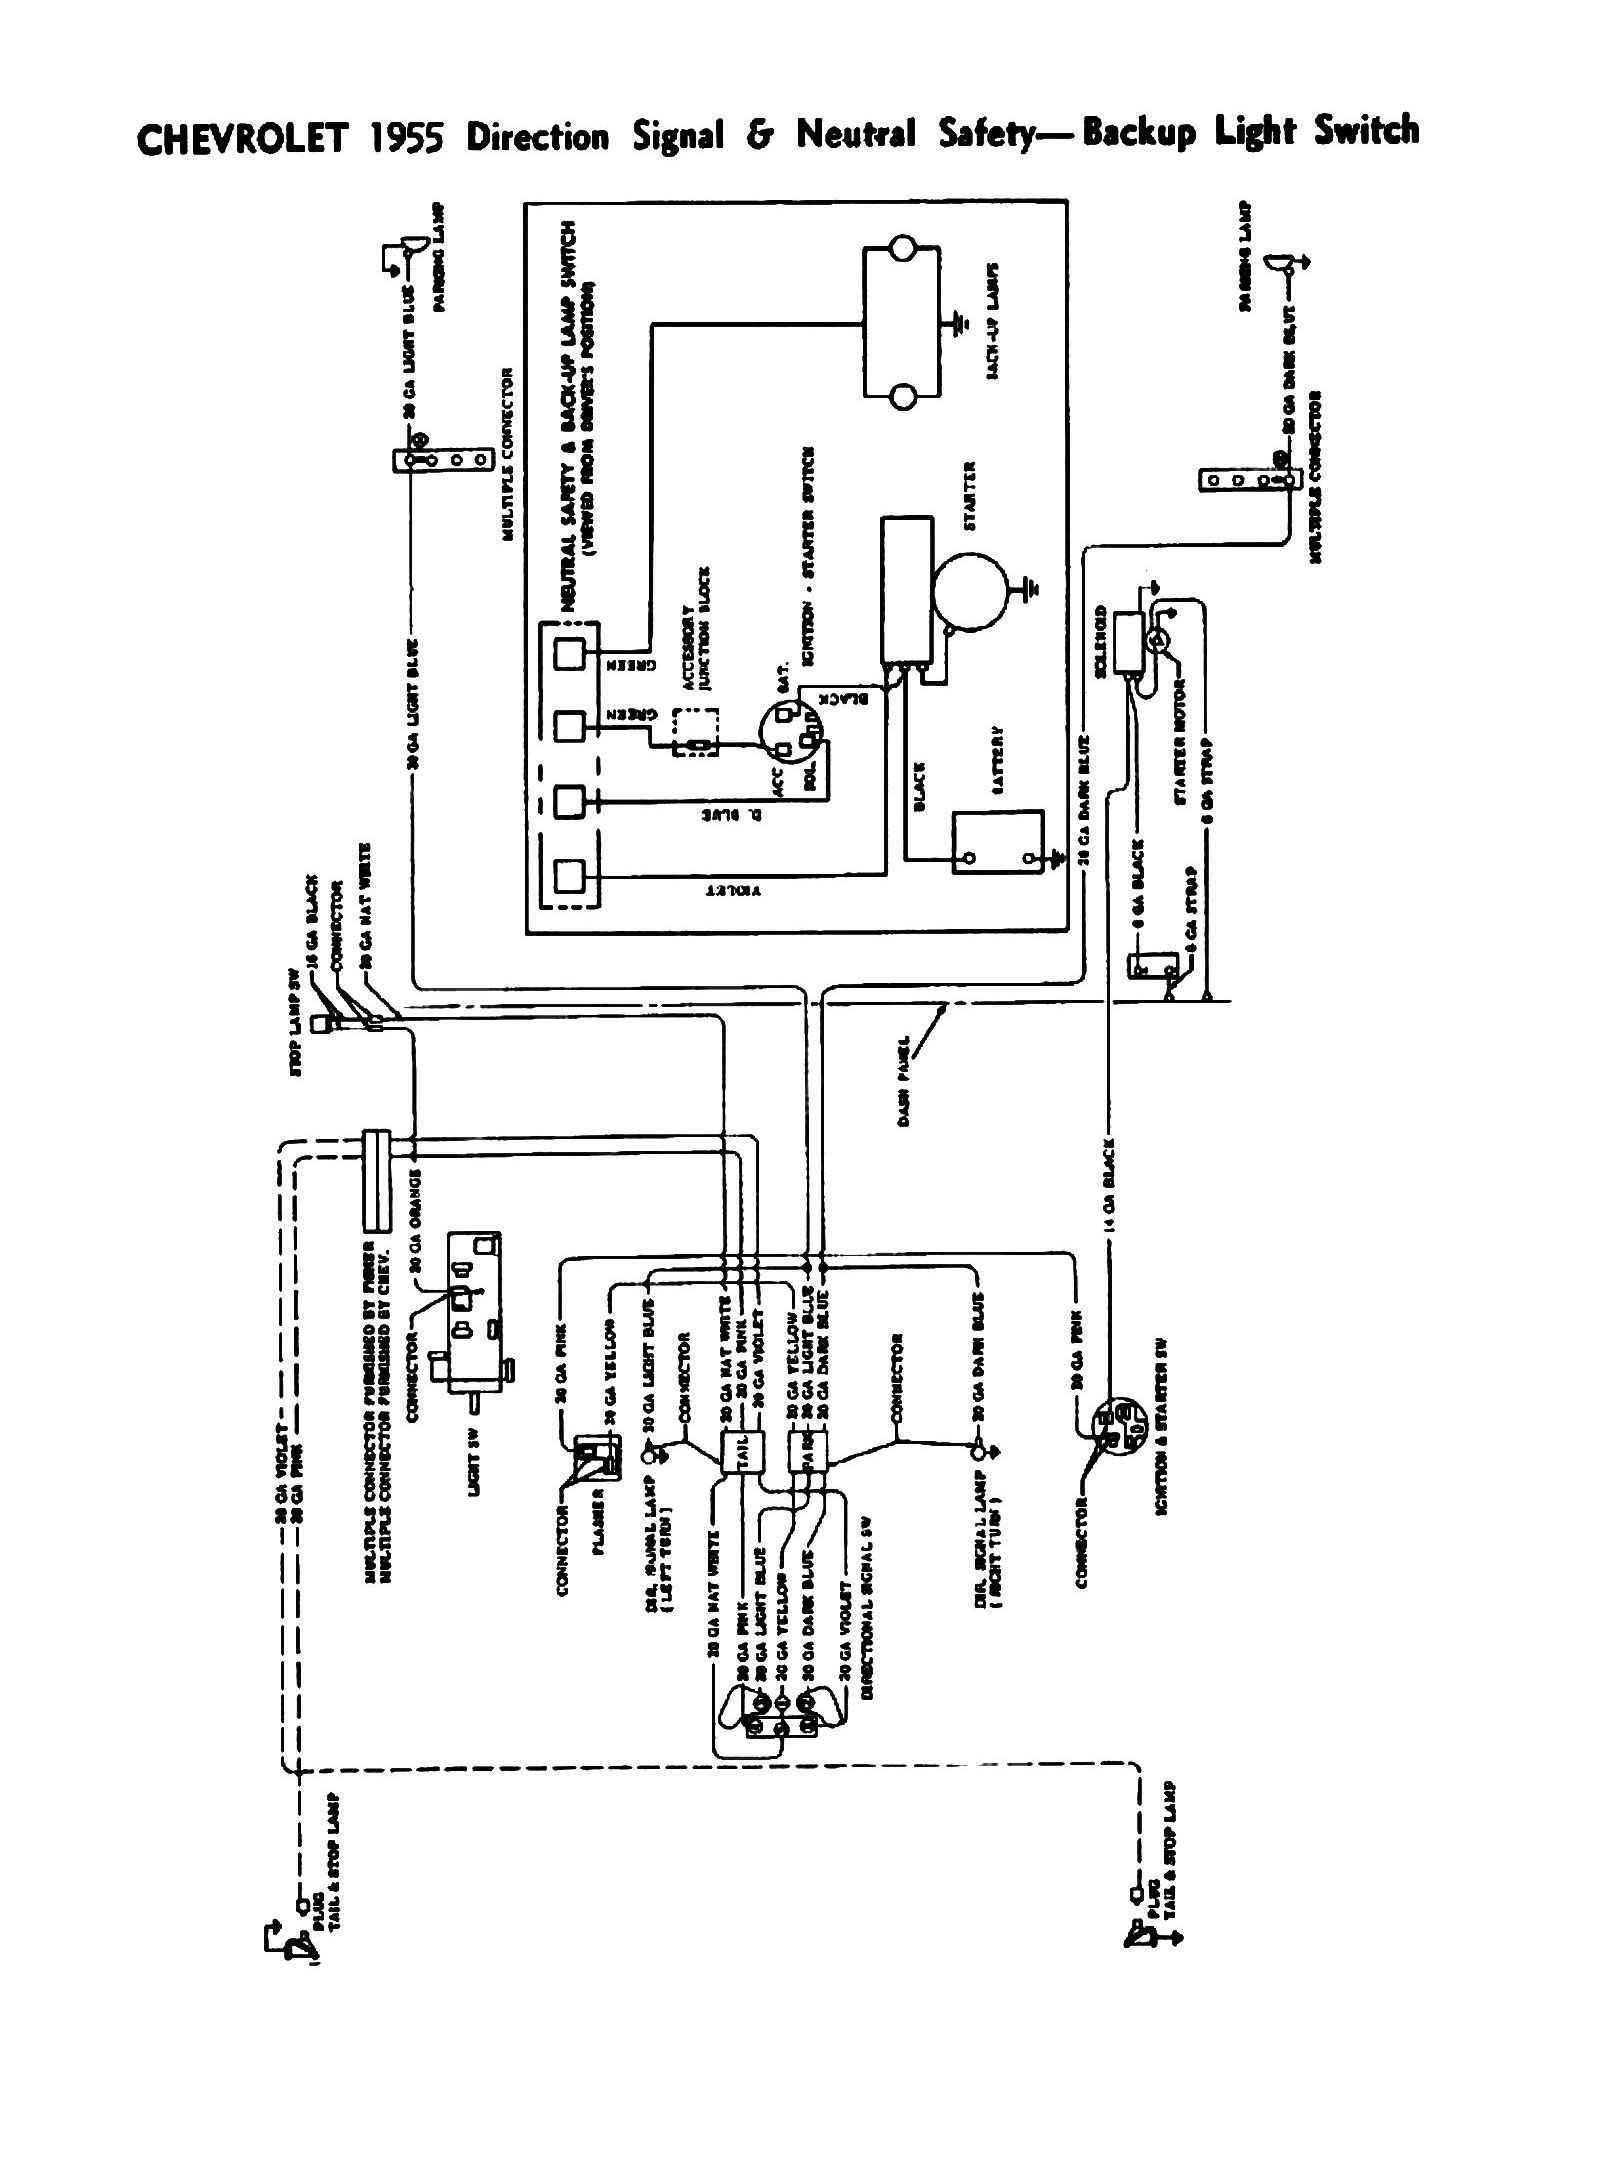 1957 chevy bel air engine wiring diagram wire data schema u2022 rh lemise co 2004 Chevy Silverado Wiring Diagram 2008 Silverado Speaker Wiring Diagram